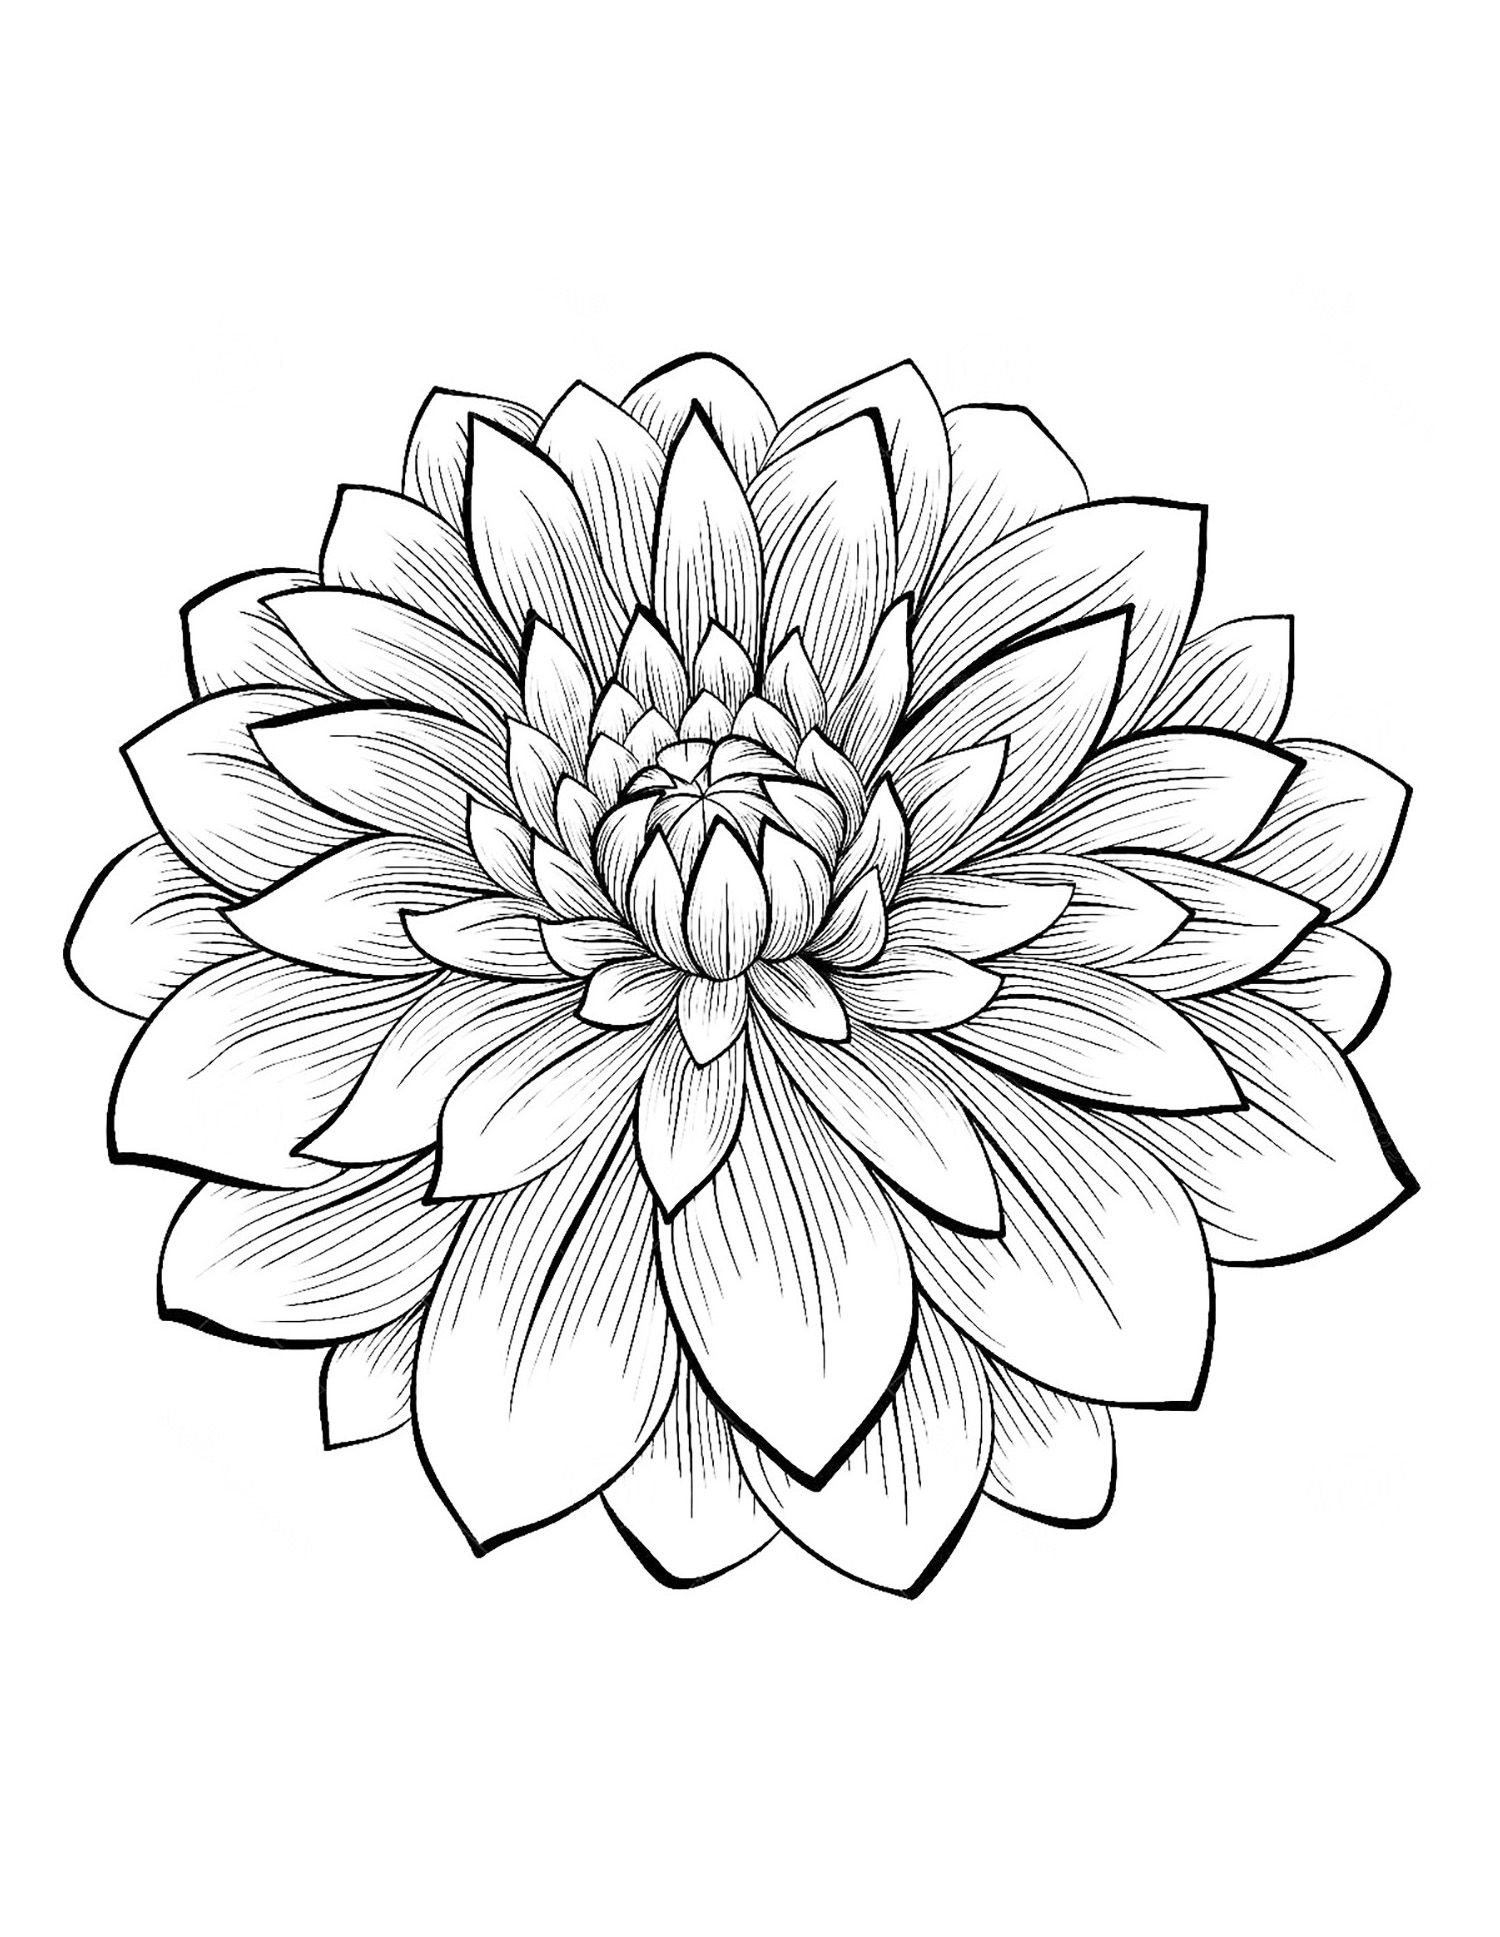 1500x1937 Incredible Dahlia Flower U Vegetation Coloring Pages For Adults